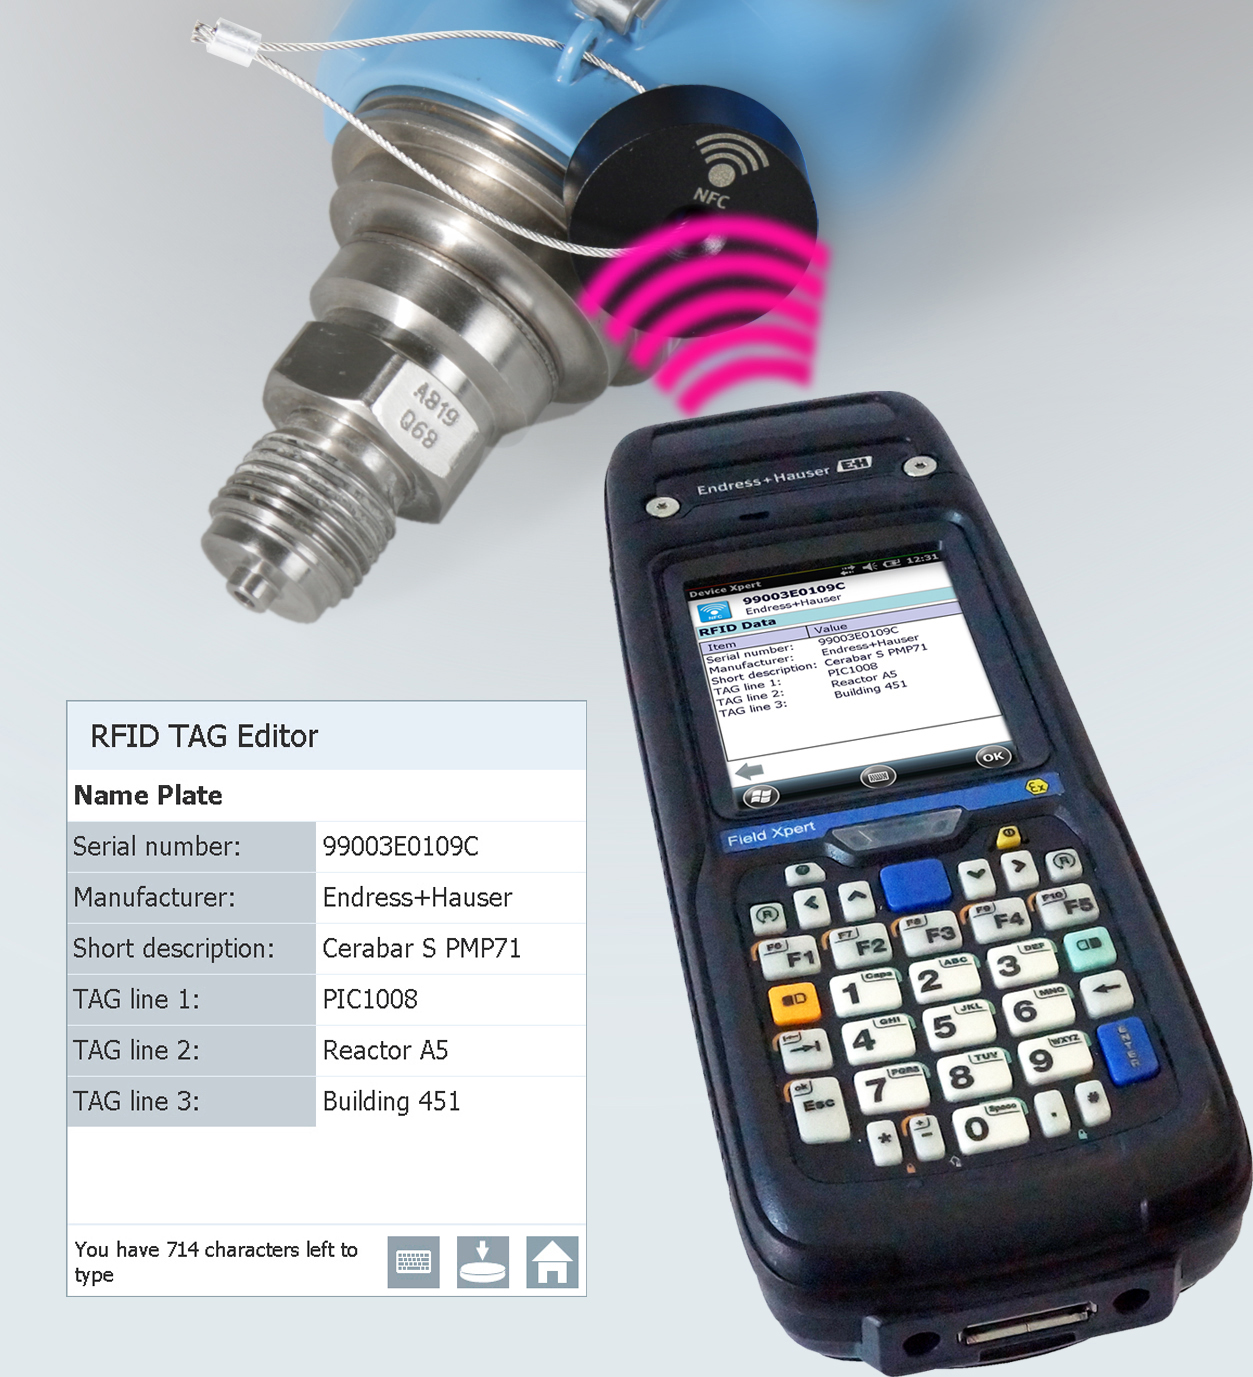 Endress+Hauser Field Xpert's RFID NFC Tag Editor speeds device